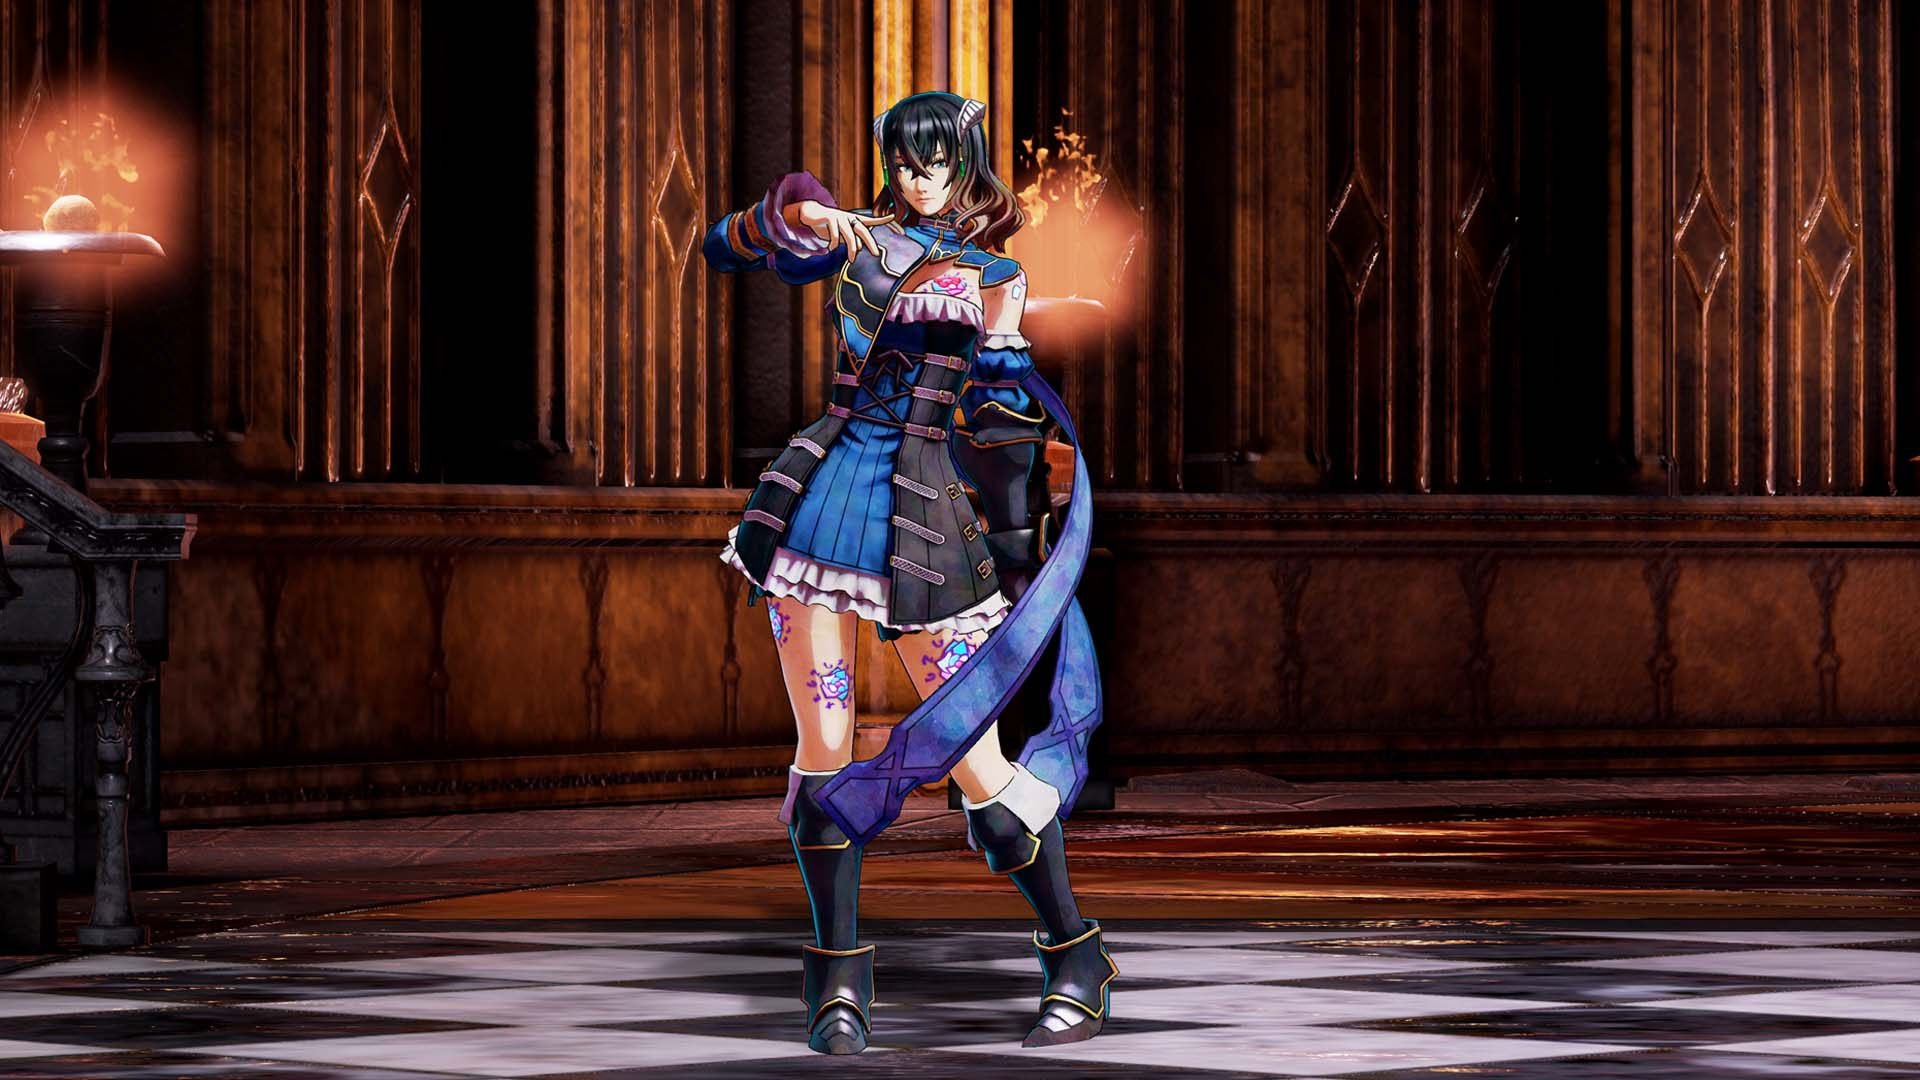 Bloodstained: Ritual of the Night - Bloodstained: Ritual of the Night Скриншот